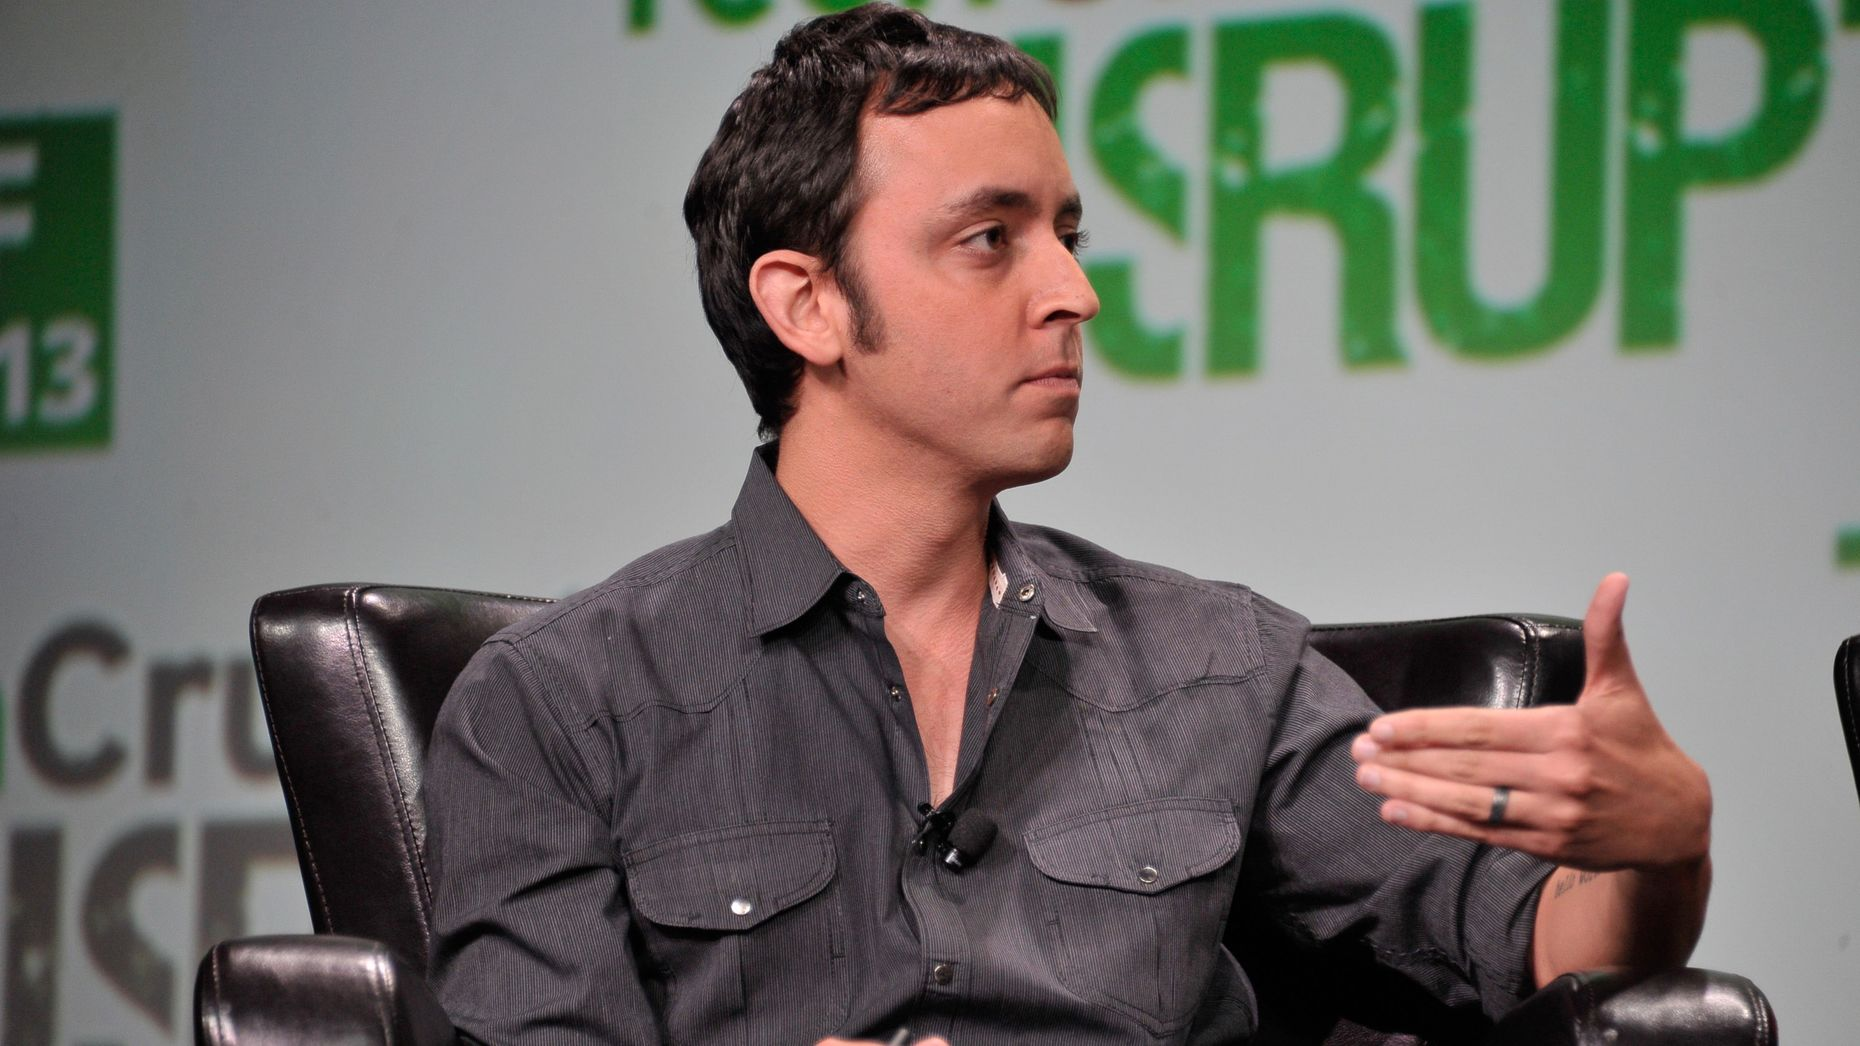 Joe Zadeh, Airbnb's vice president of product. Photo by Flickr/TechCrunch.